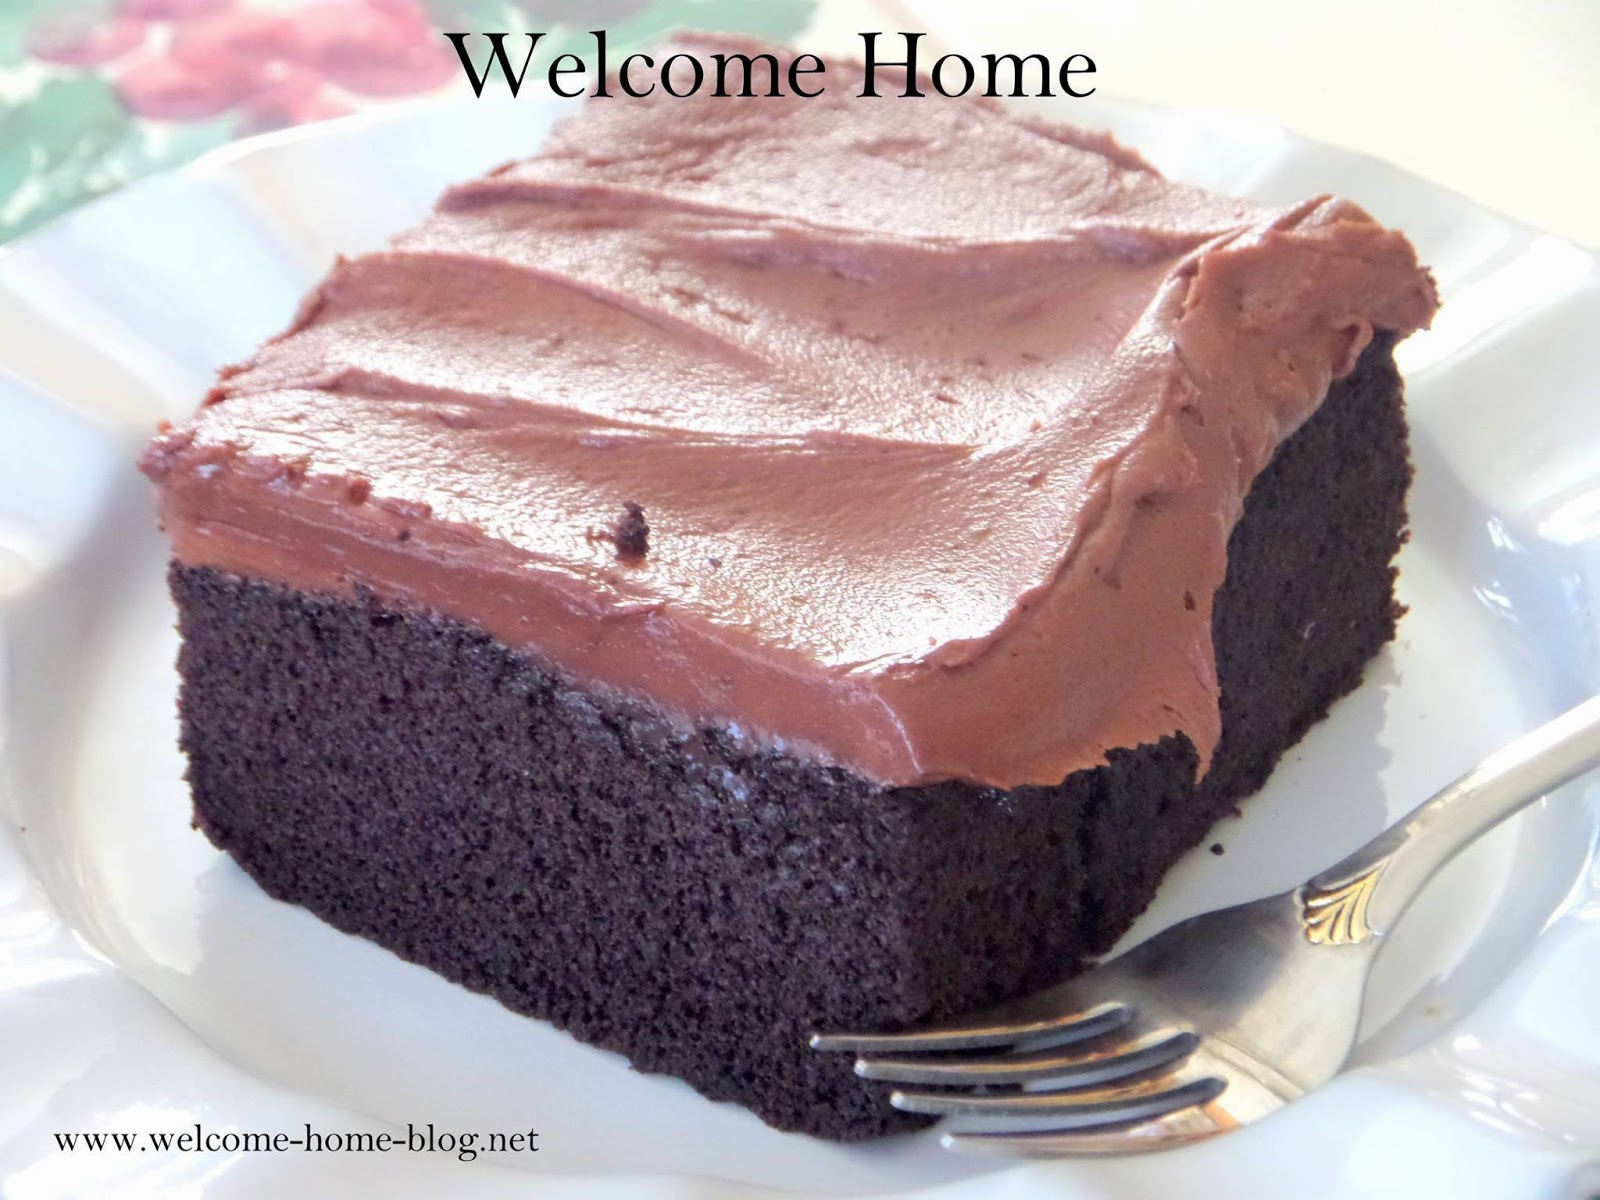 Welcome Home Blog Classic Chocolate Cake With Buttercream Frosting